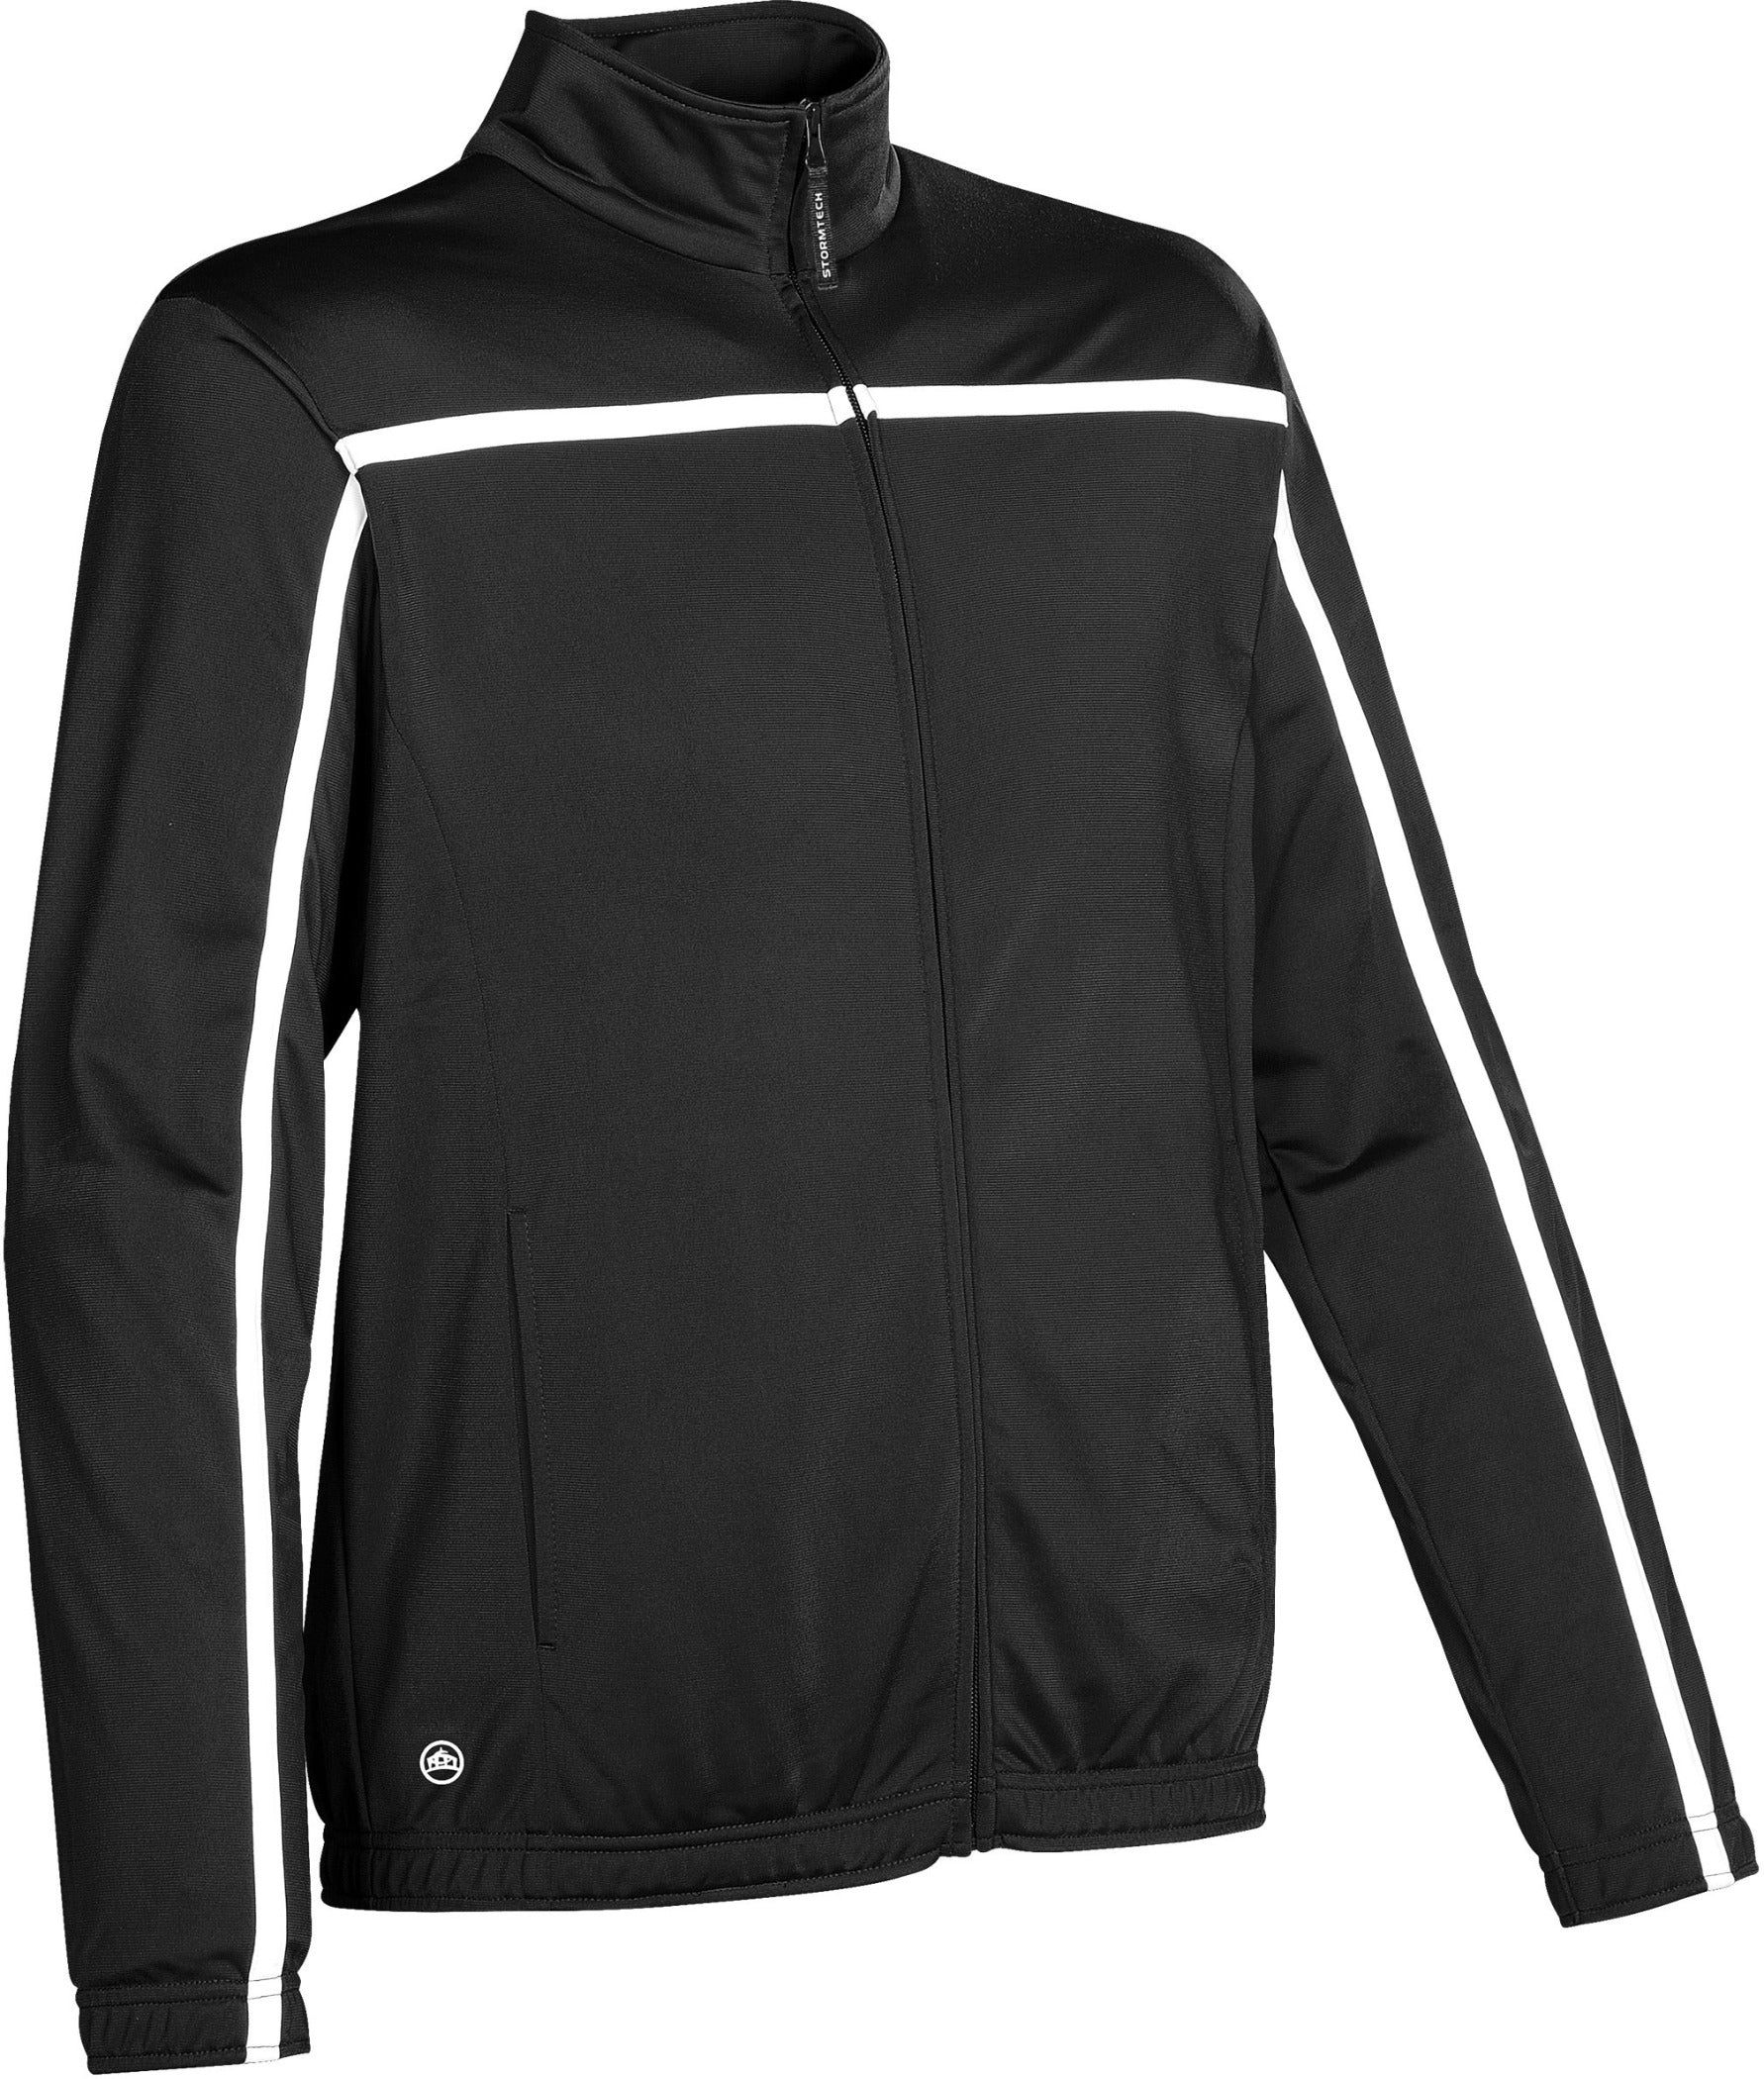 STORMTECH MEN'S PREMIER PERFORMANCE KNIT JACKET